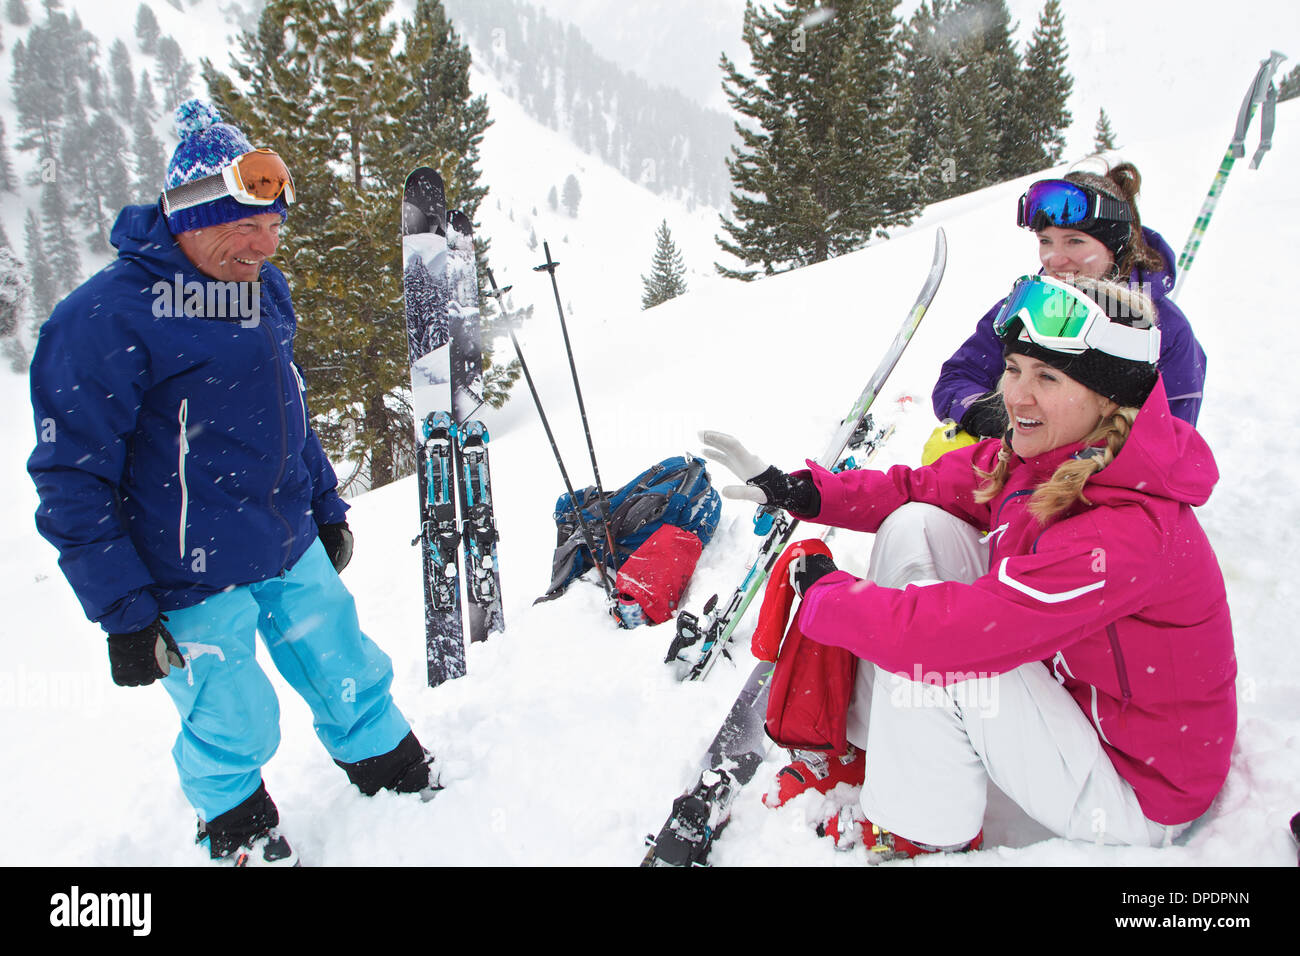 Guide and clients ski touring in Kuhtai, Austria - Stock Image